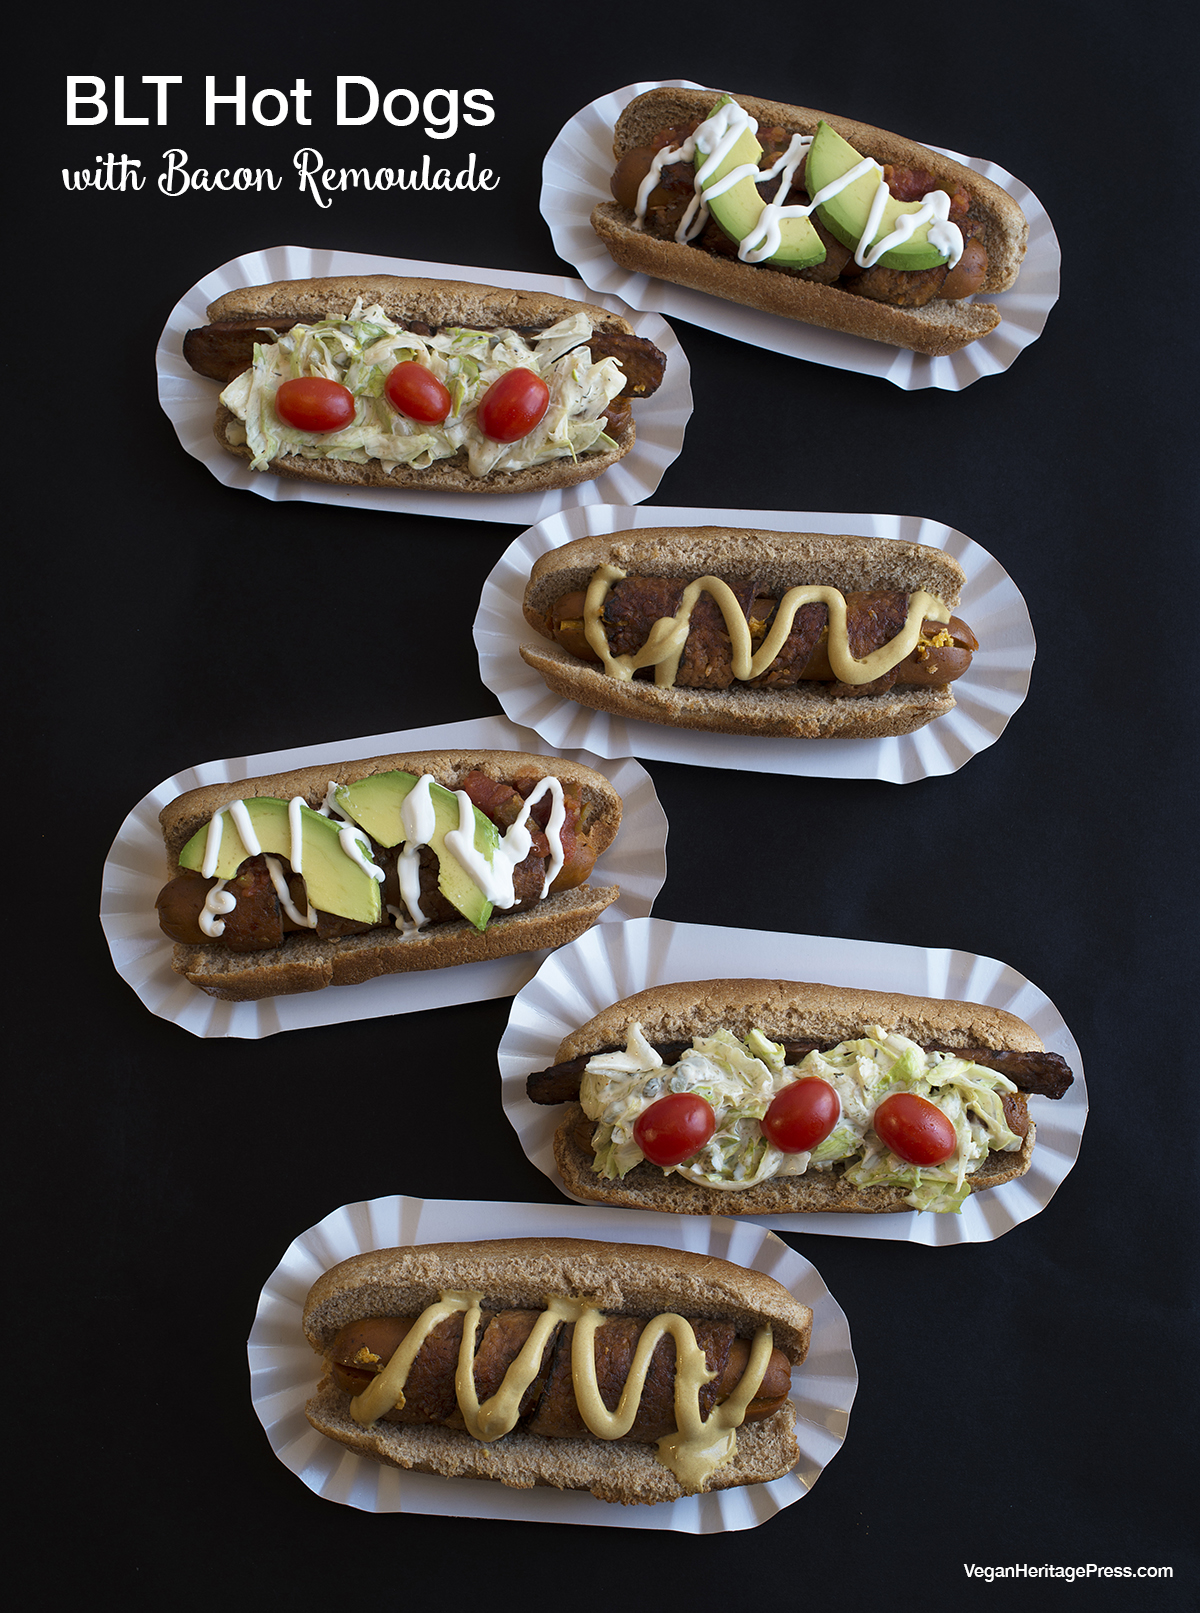 BLT Hot Dogs with Bacon Remoulade from Baconish by Leinana Two Moons